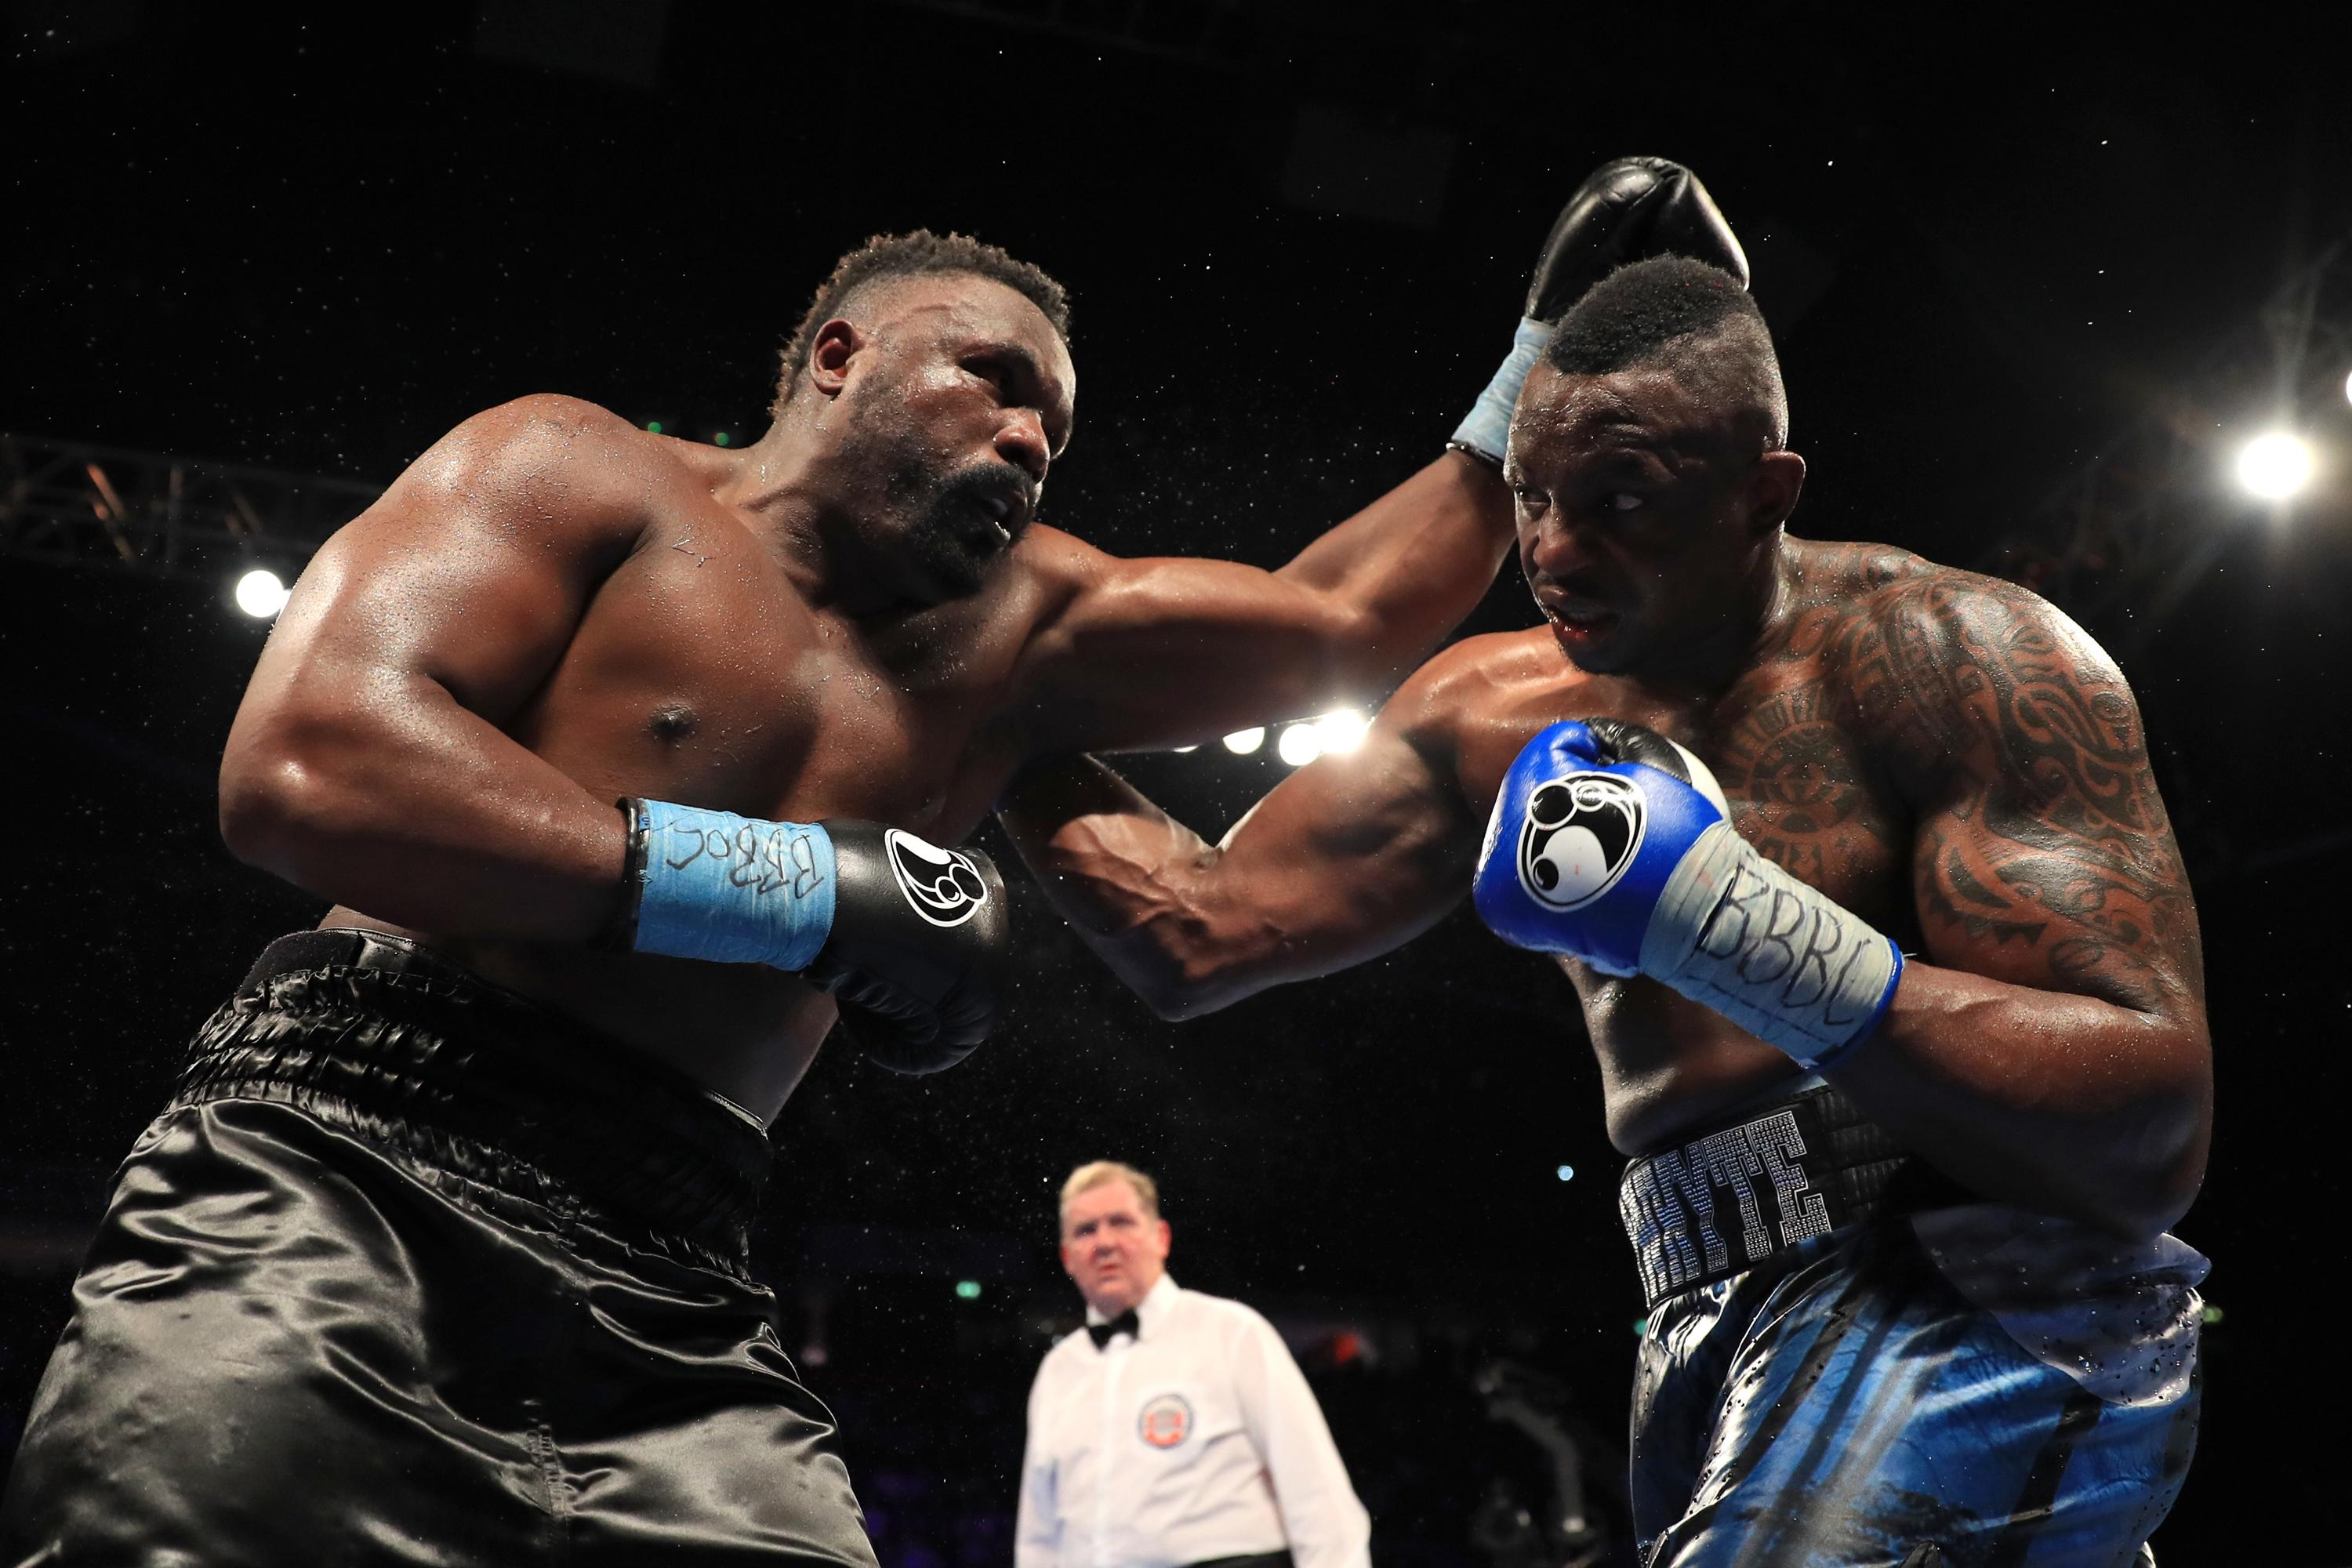 Dillian Whyte beat Dereck Chisora in December on a split decision in December